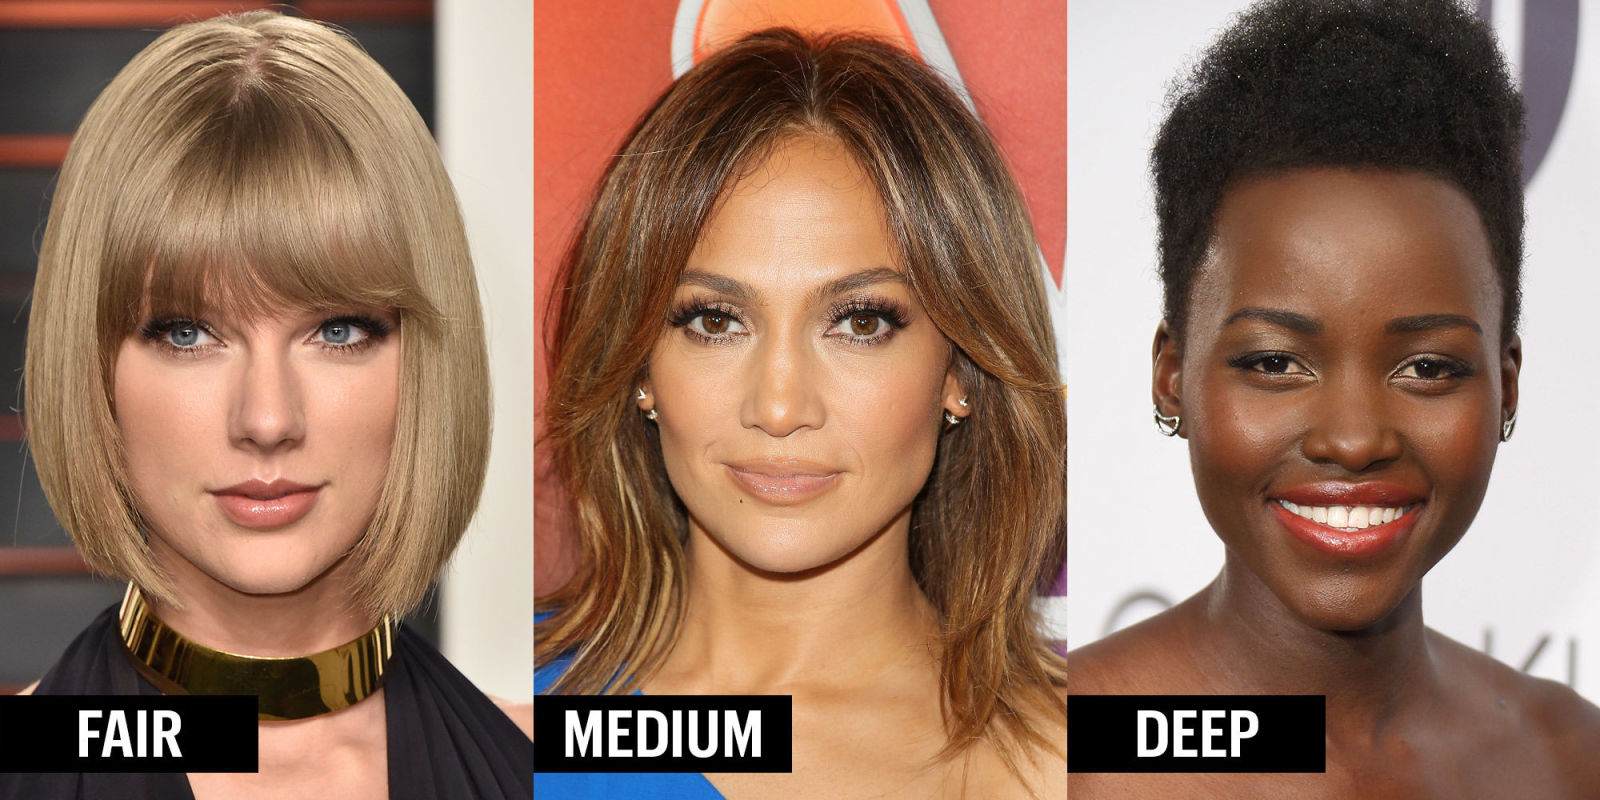 Tremendous 35 Shades Of Blonde Hair The Ultimate Blonde Hair Color Guide Short Hairstyles For Black Women Fulllsitofus